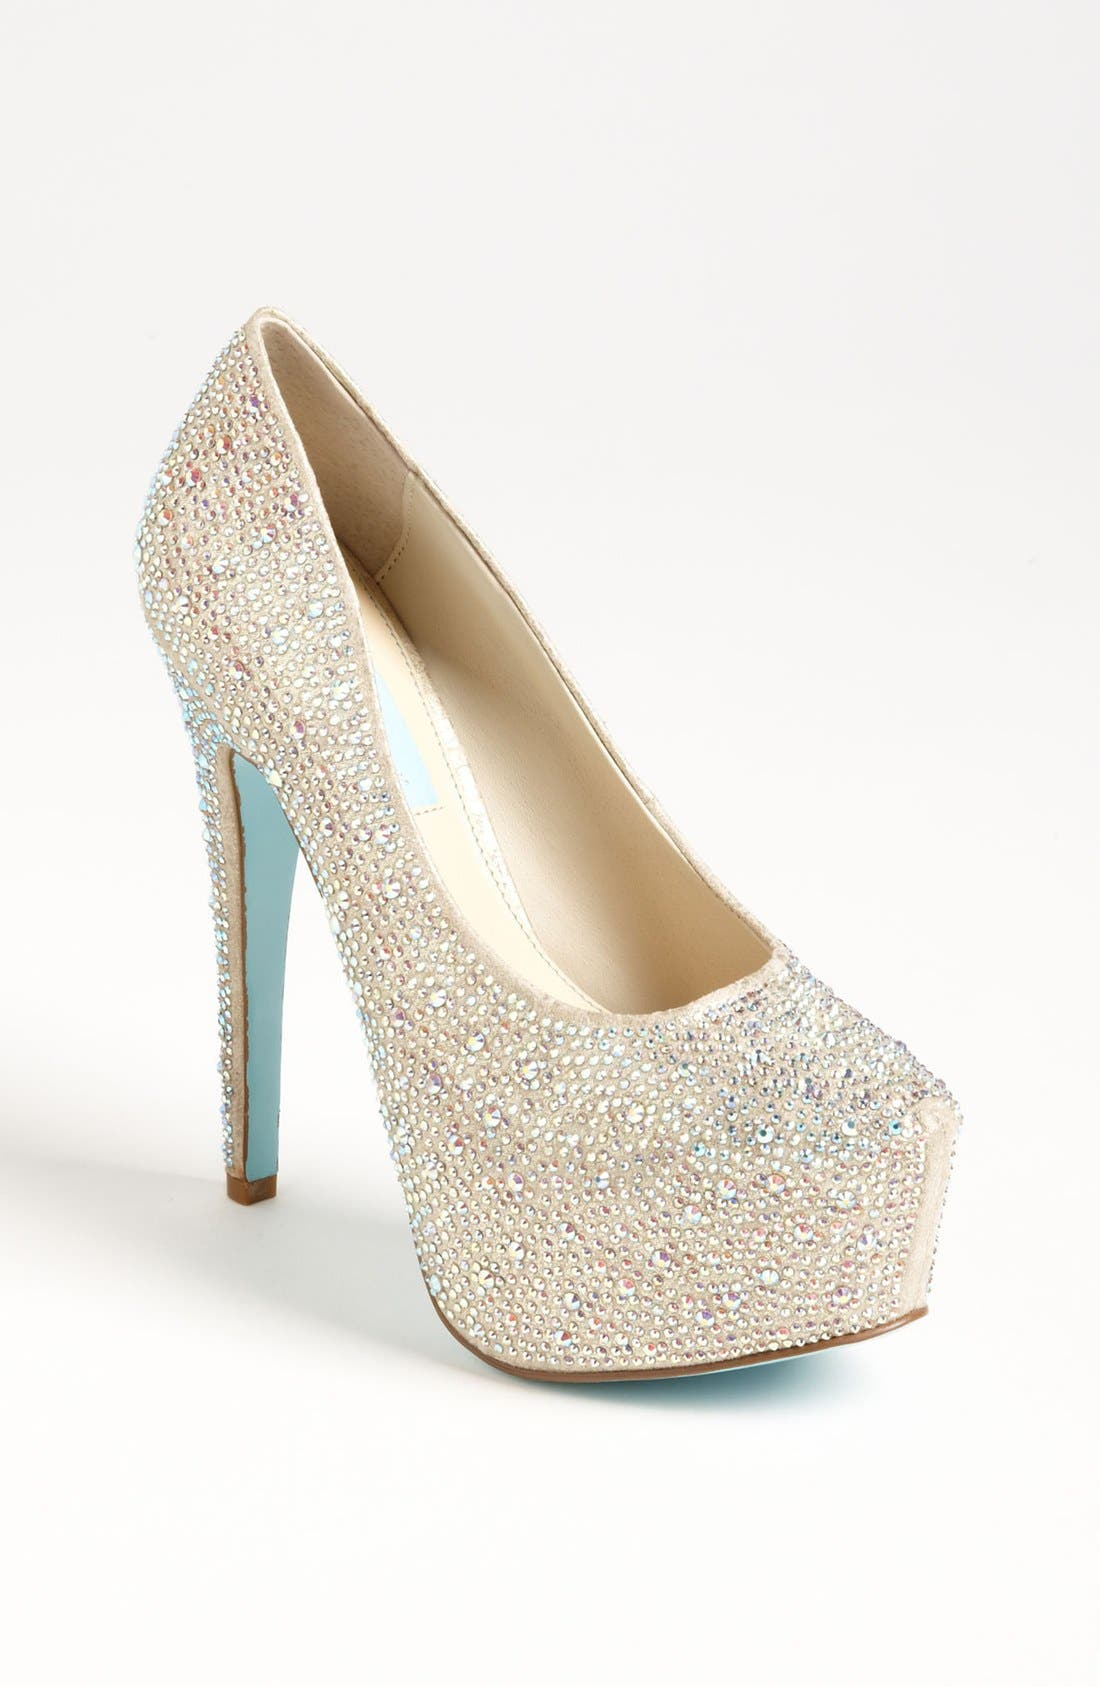 Main Image - Blue by Betsey Johnson 'Wish' Pump